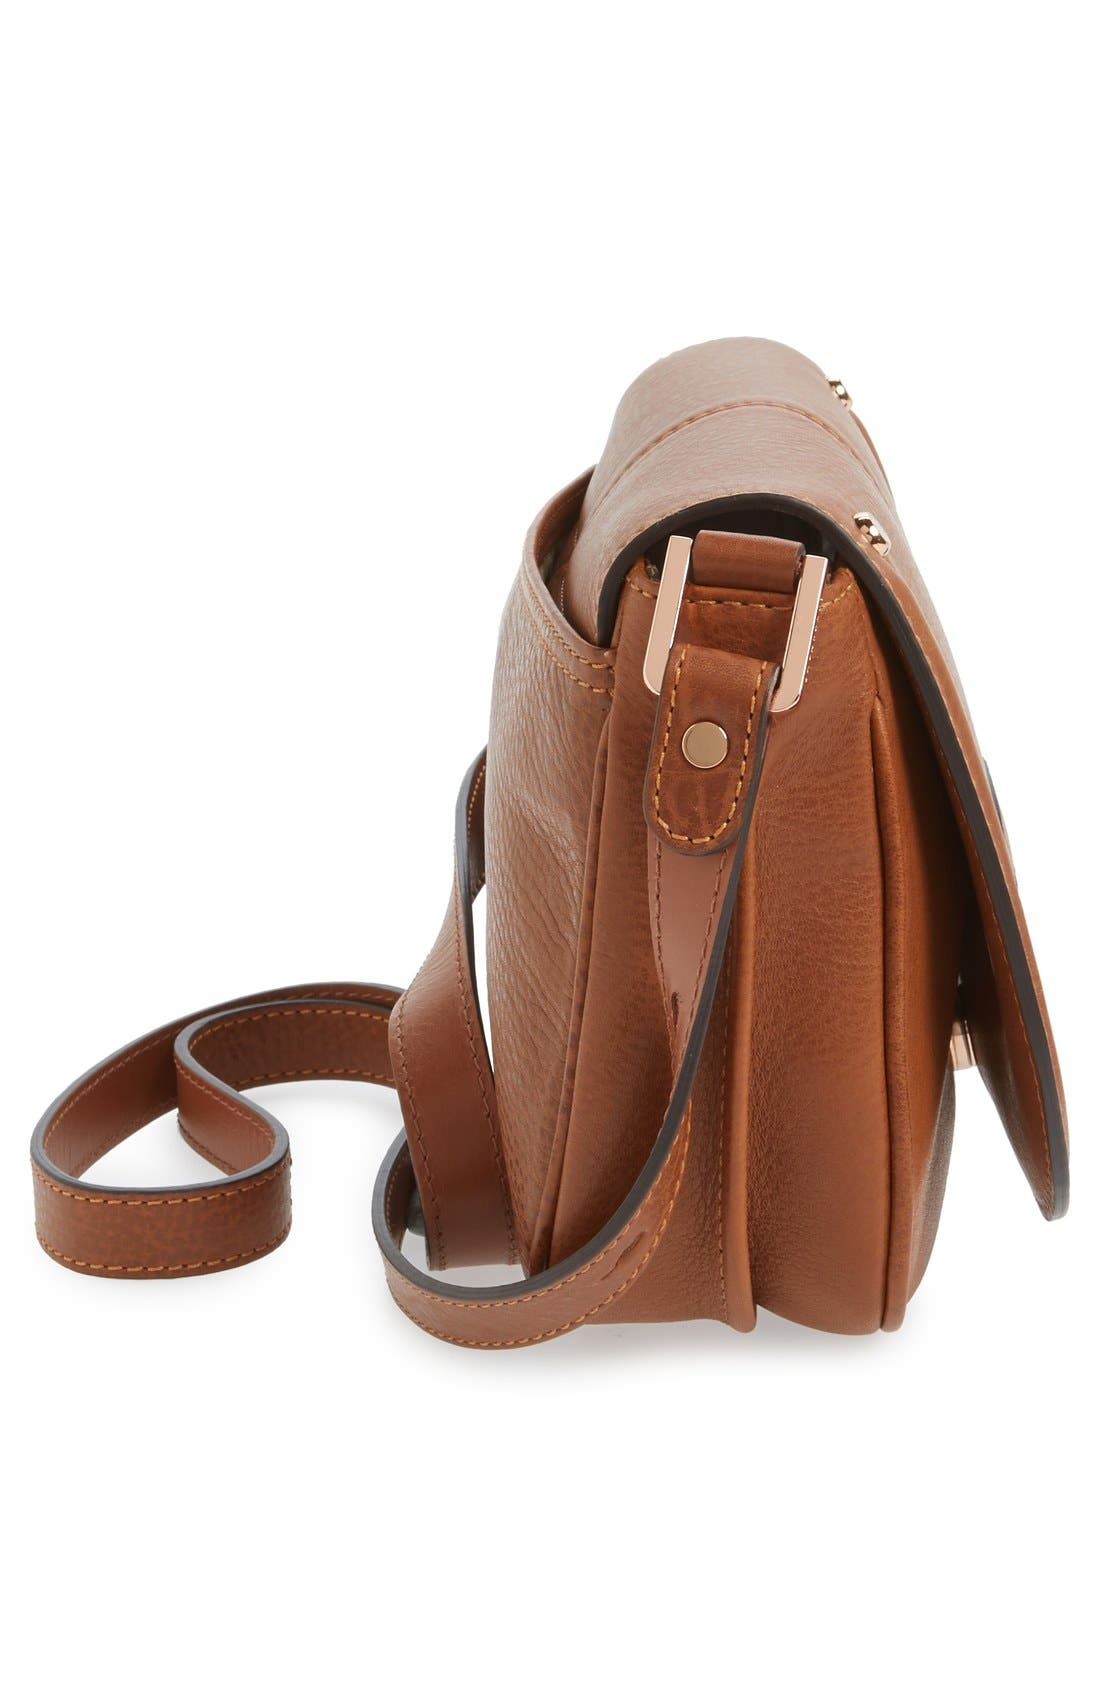 'Small Mystery' Leather Crossbody Bag,                             Alternate thumbnail 6, color,